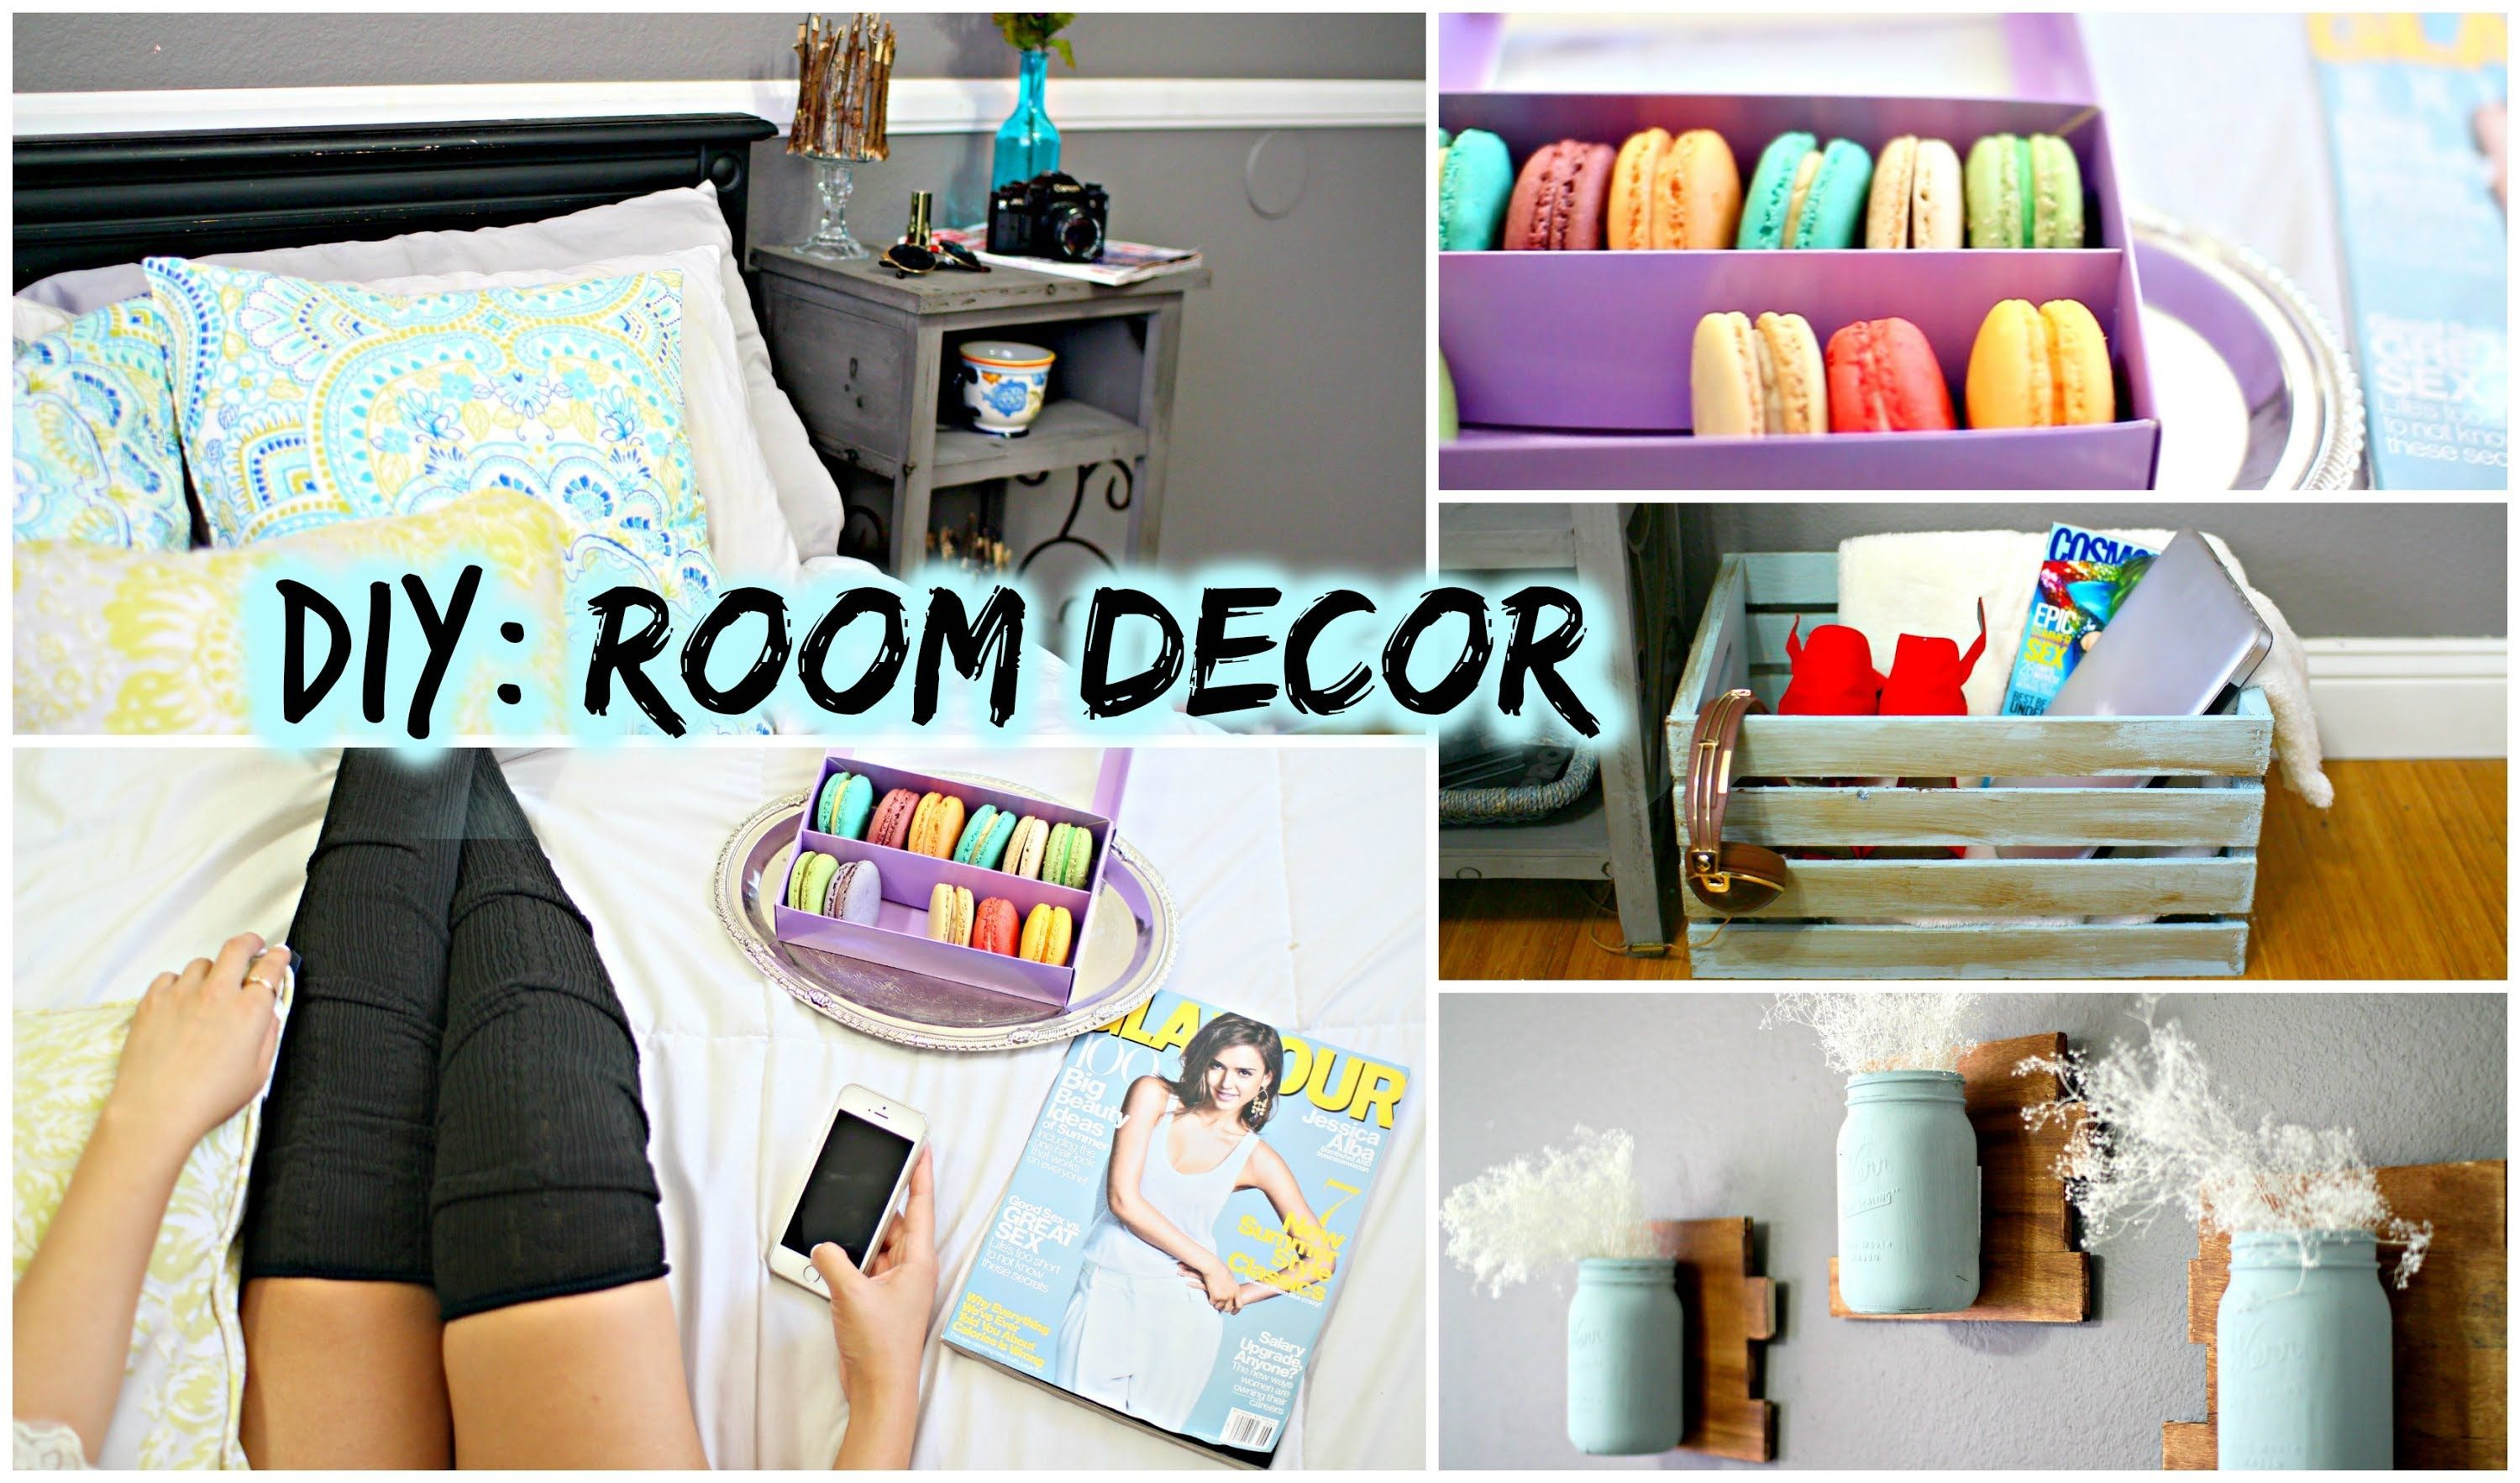 Bedroom wall decoration ideas pinterest - Diy Room Decor Love These Diys As Well If I Make All Of These Ideas From All Of